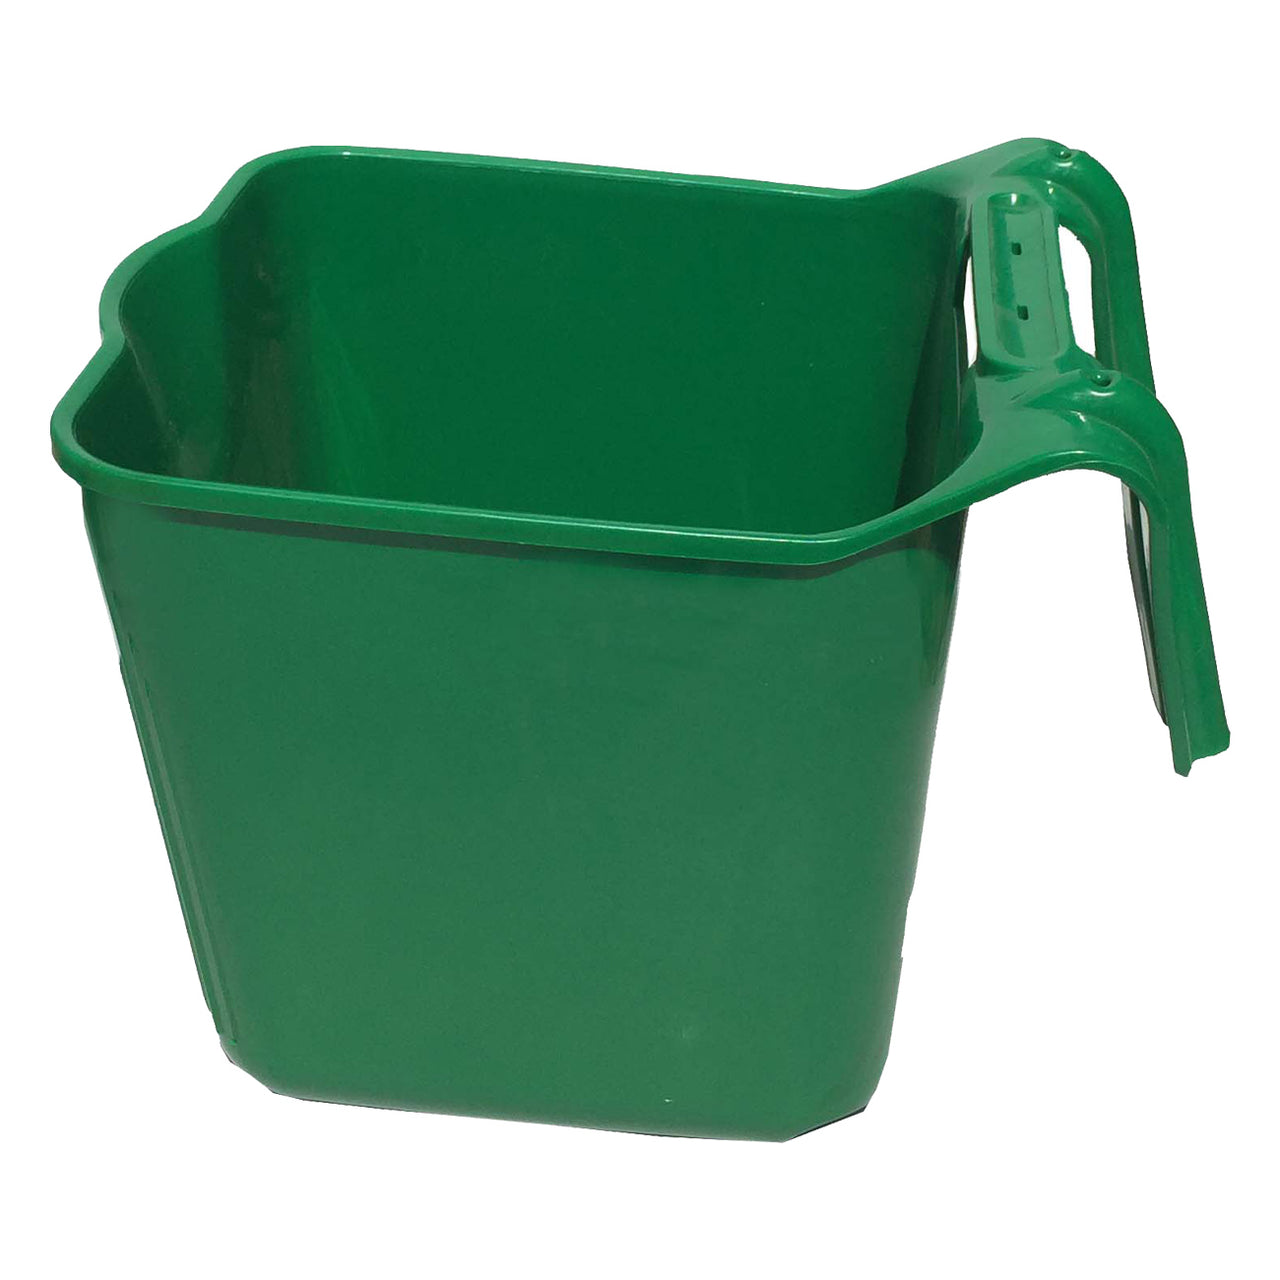 Tuff Stuff Square Fence Feeder 14 Qts (Green) - Buckets Pails Feeders Scoops Tubs Bottles Tuff Stuff - Canada